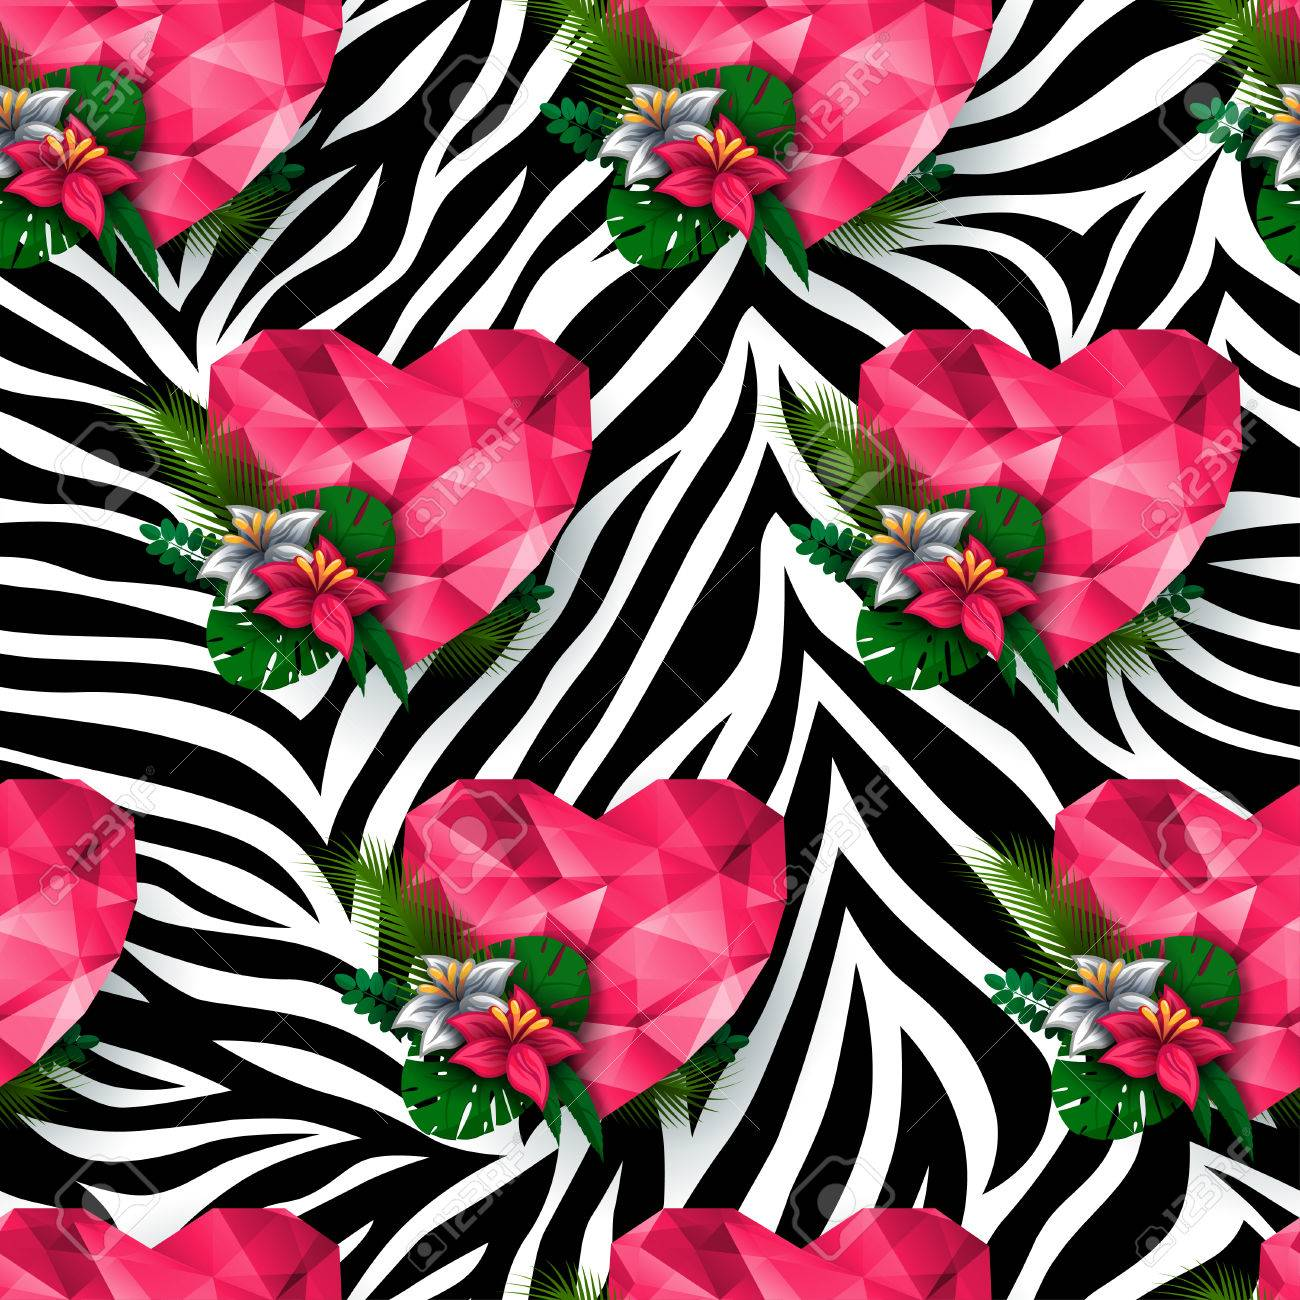 Image of: Vector Animal Print Zebra Texture Polygonal Hearts And Flowers Endless Texture Can Be Used 123rfcom Animal Print Zebra Texture Polygonal Hearts And Flowers Endless